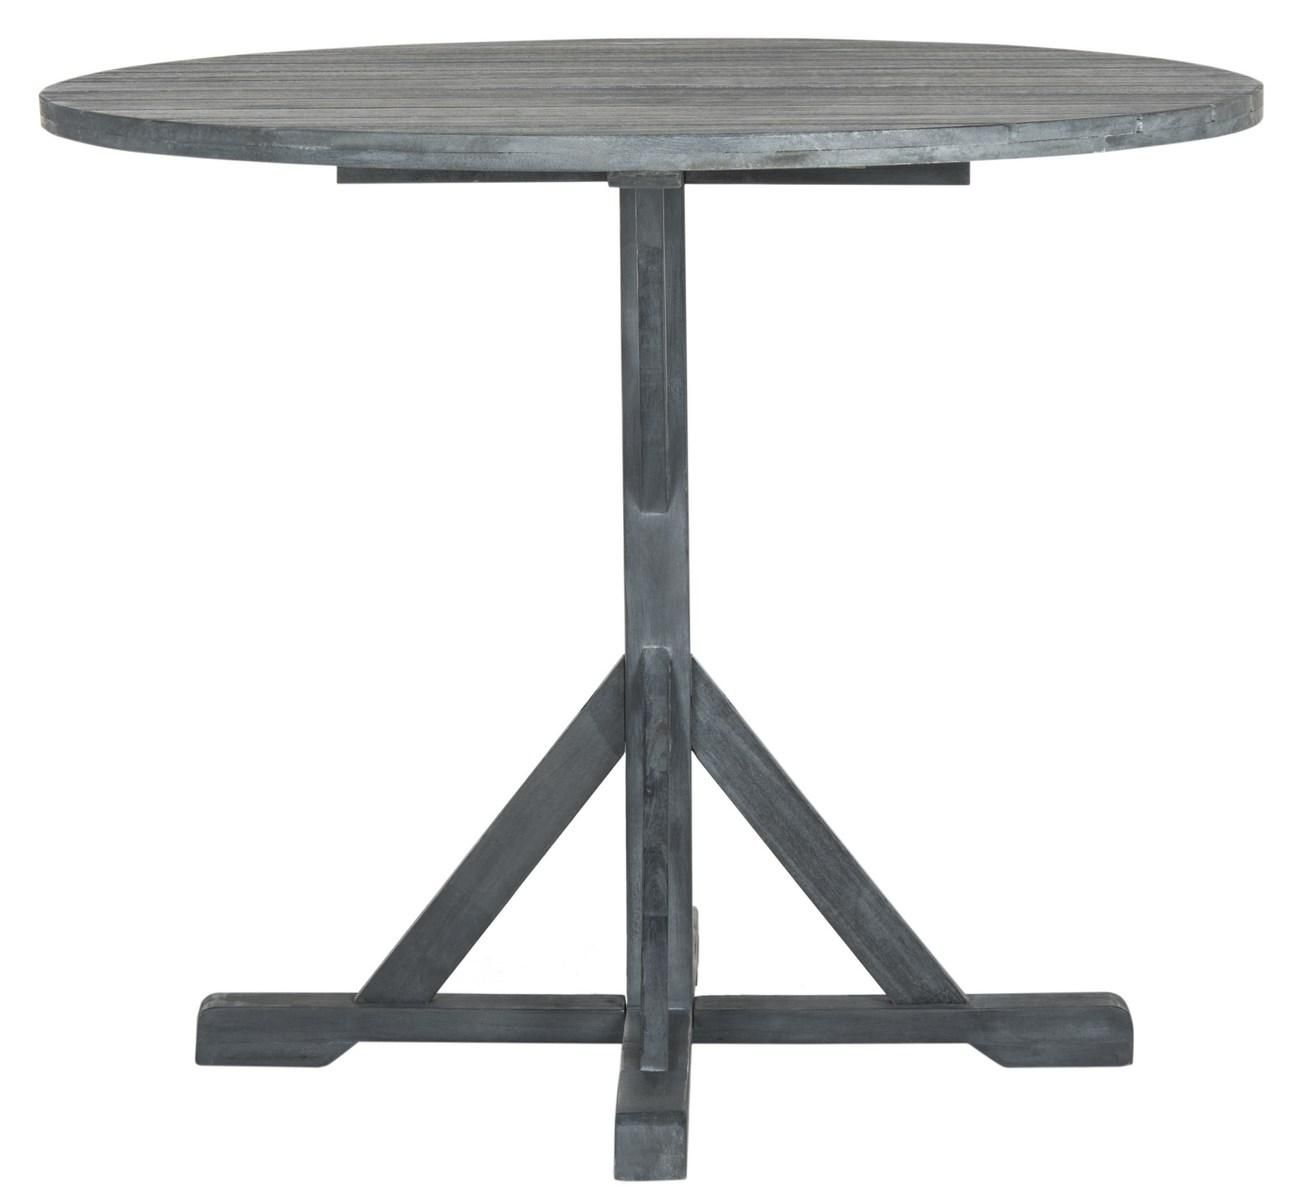 PAT6735B Outdoor Dining Tables, Outdoor Home Furnishings ...